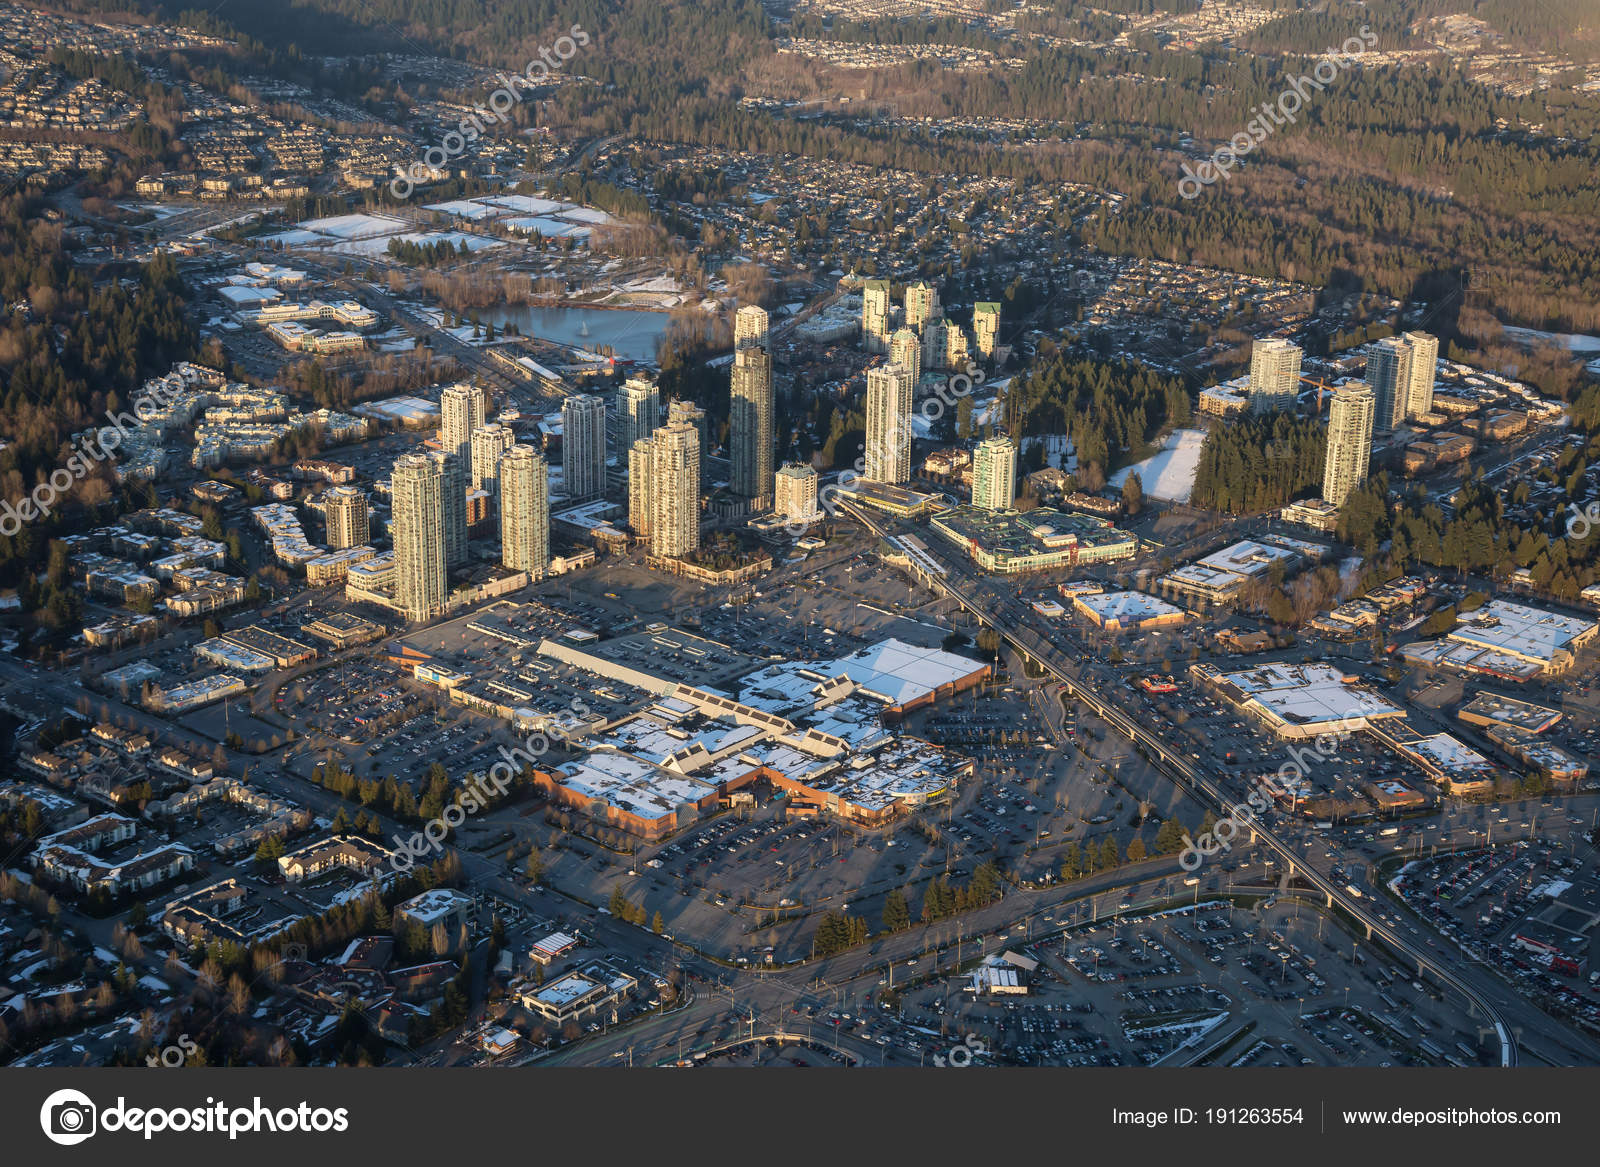 depositphotos_191263554-stock-photo-vancouver-british-columbia-canada-february.jpg